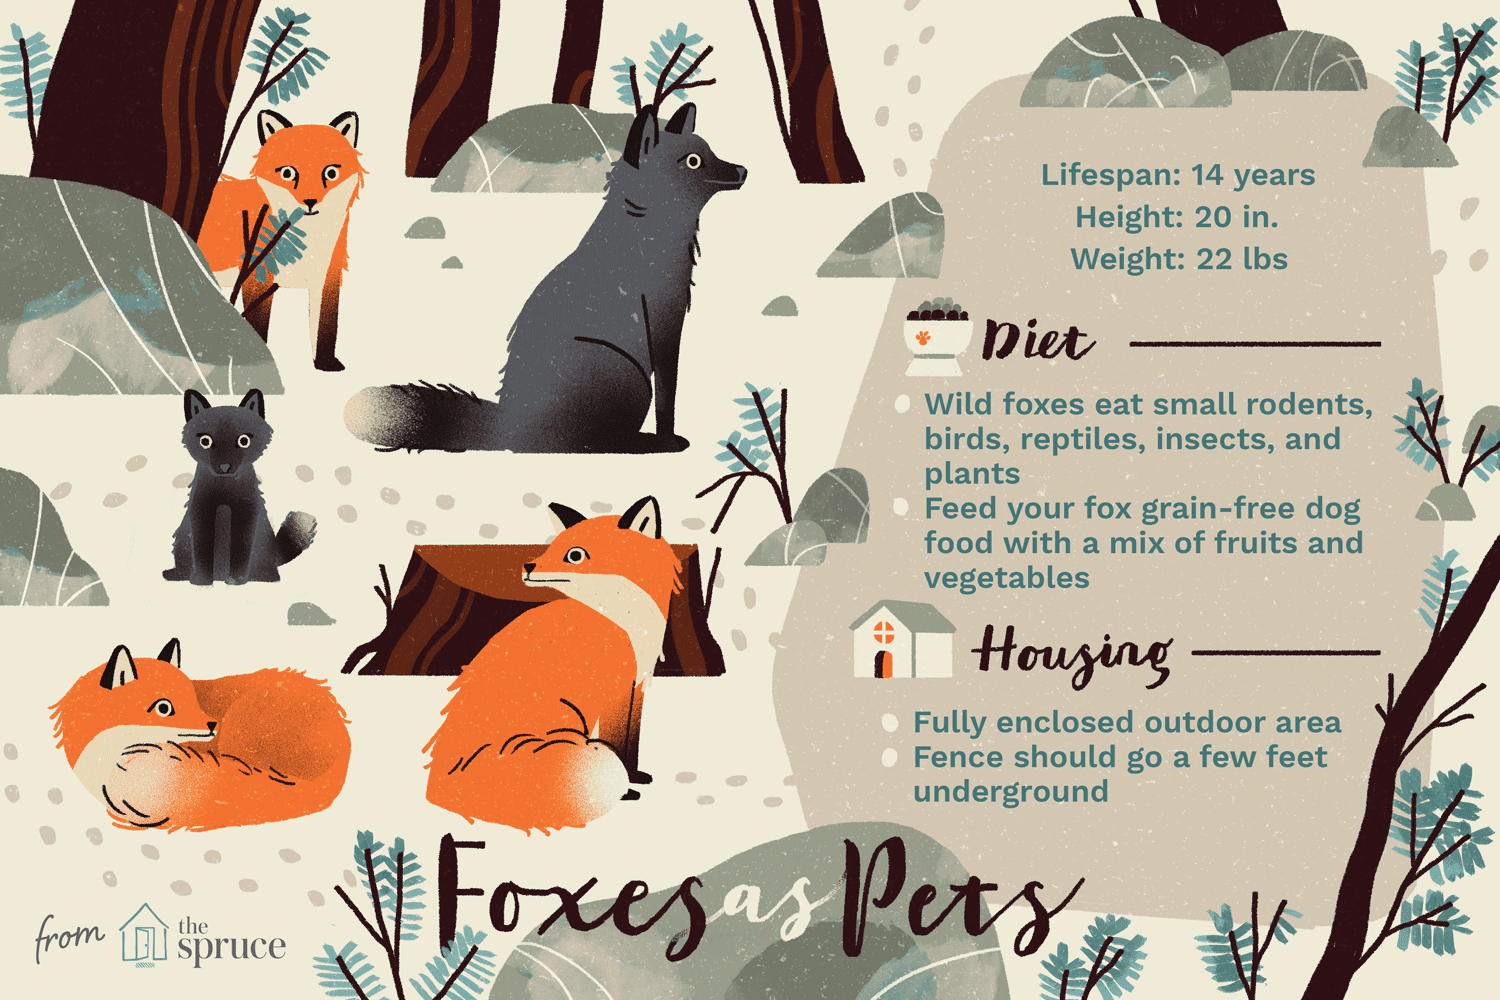 illustration of foxes as pets, care sheet